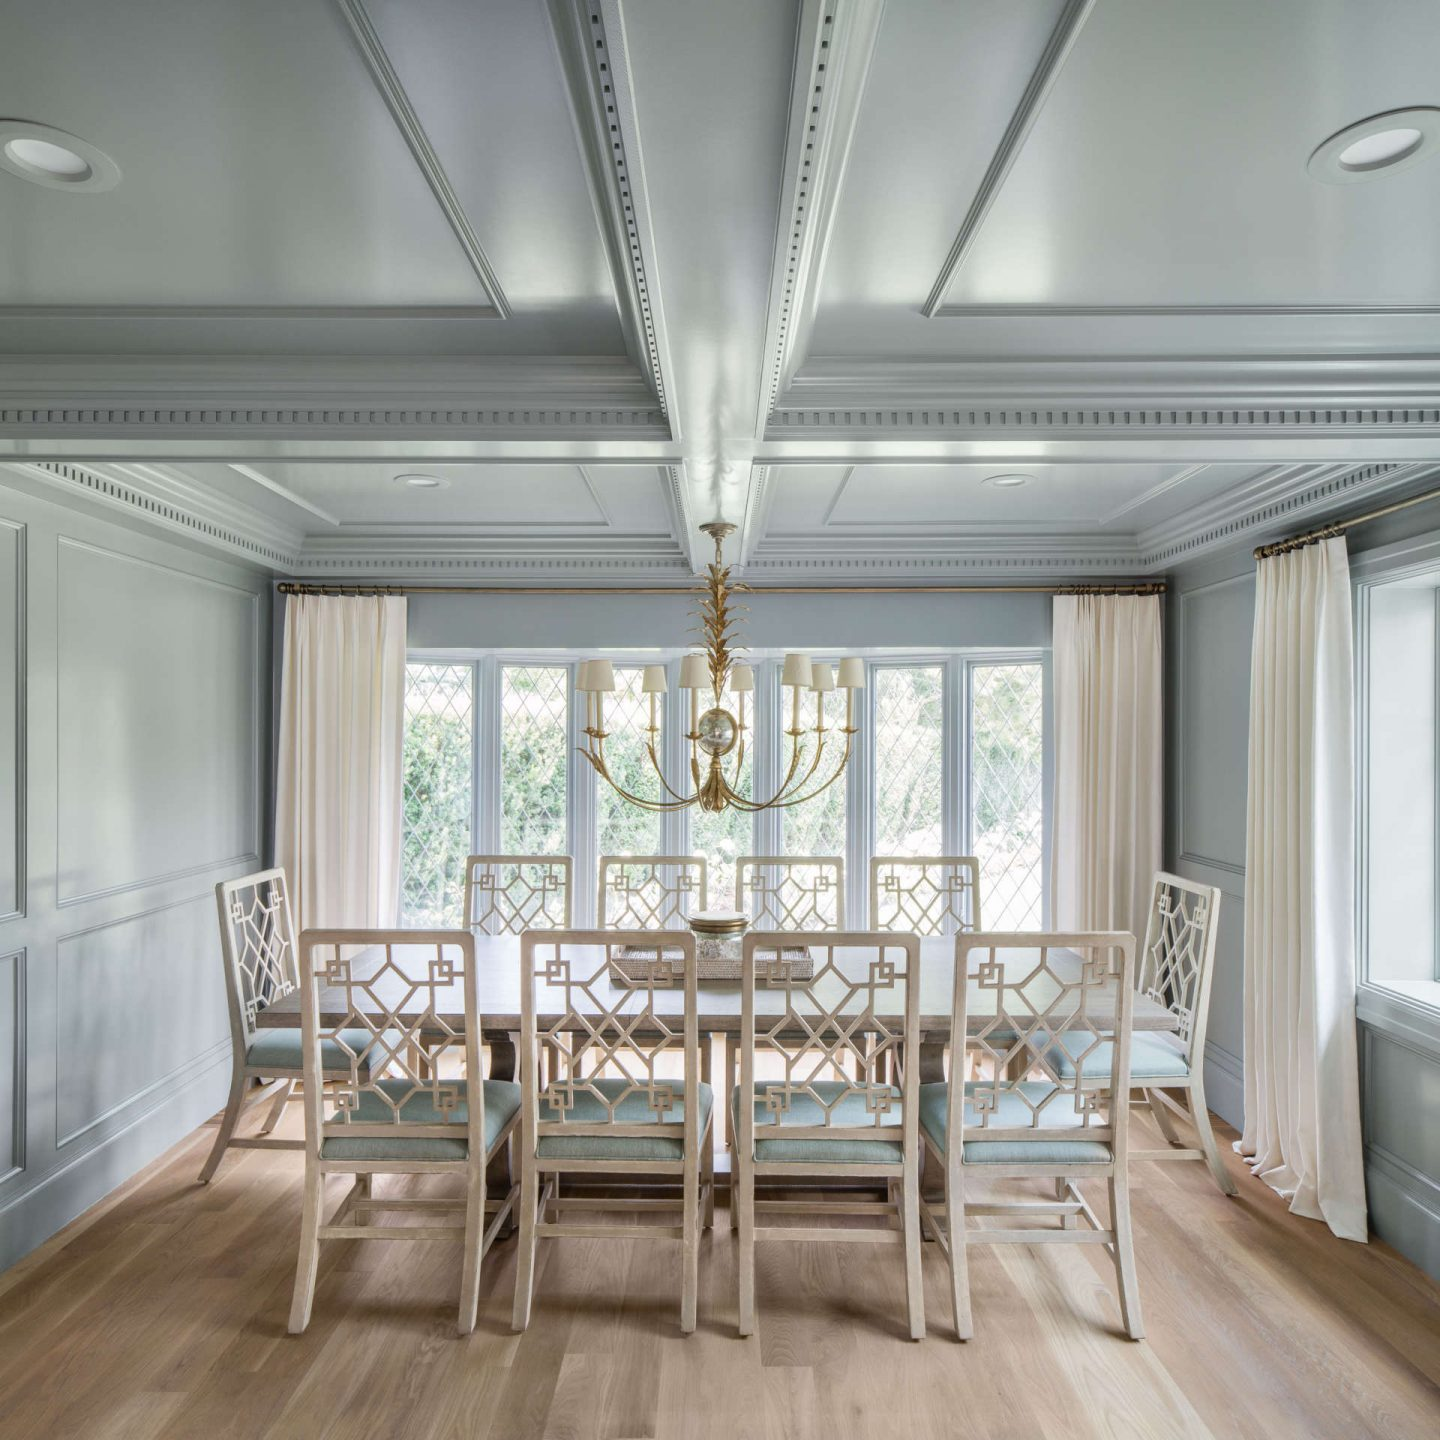 Magnificent paneling on walls and ceiling of a dining room by the Fox Group in a renovated Tudor home. #diningroom #thefoxgroup #millwork #traditional